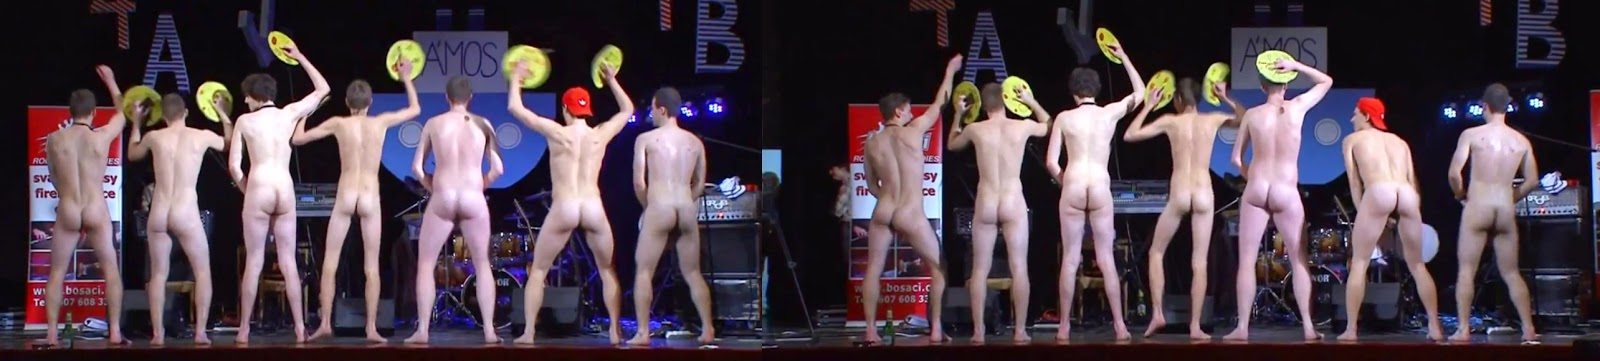 naked twinks on stage